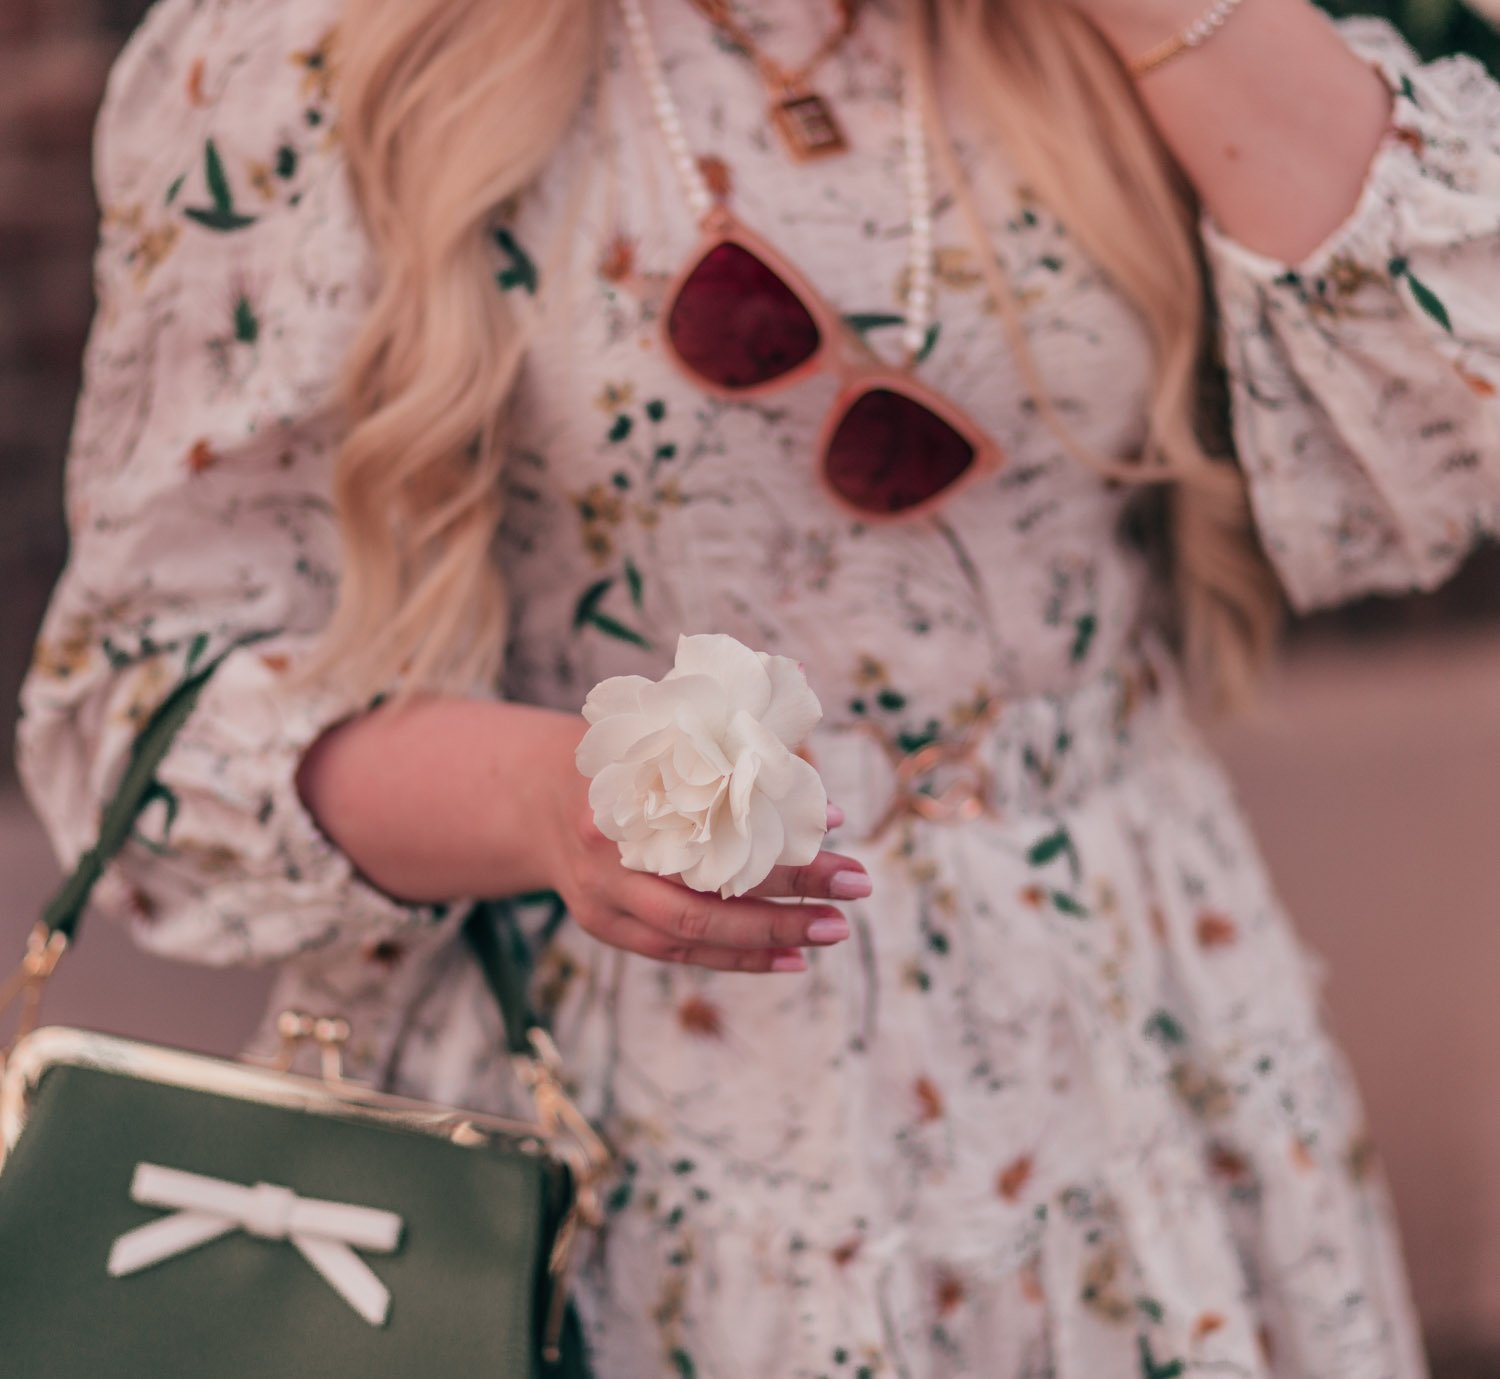 Feminine fashion blogger Elizabeth Hugen of Lizzie in Lace shares her spring 2021 bucket list along with a girly spring outfit idea including this floral Chicwish dress and blush Sunski sunglasses